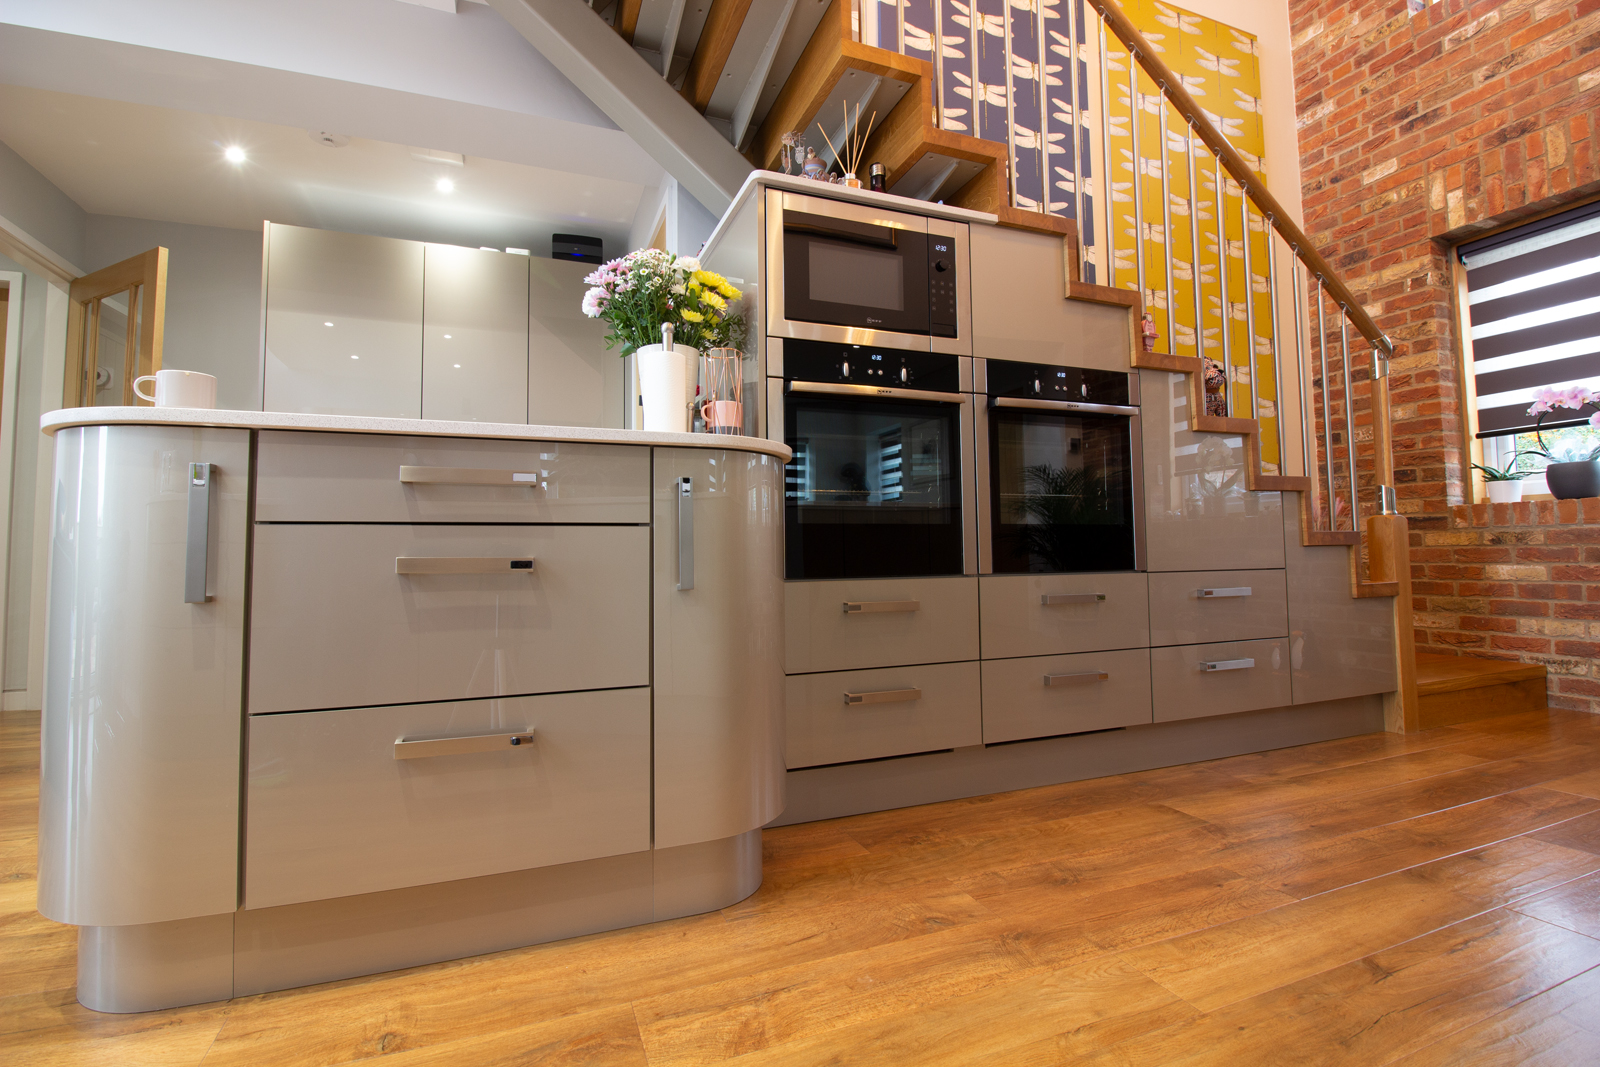 Mr Raw - Harrogate : Cheap Kitchen Units and Cabinets for